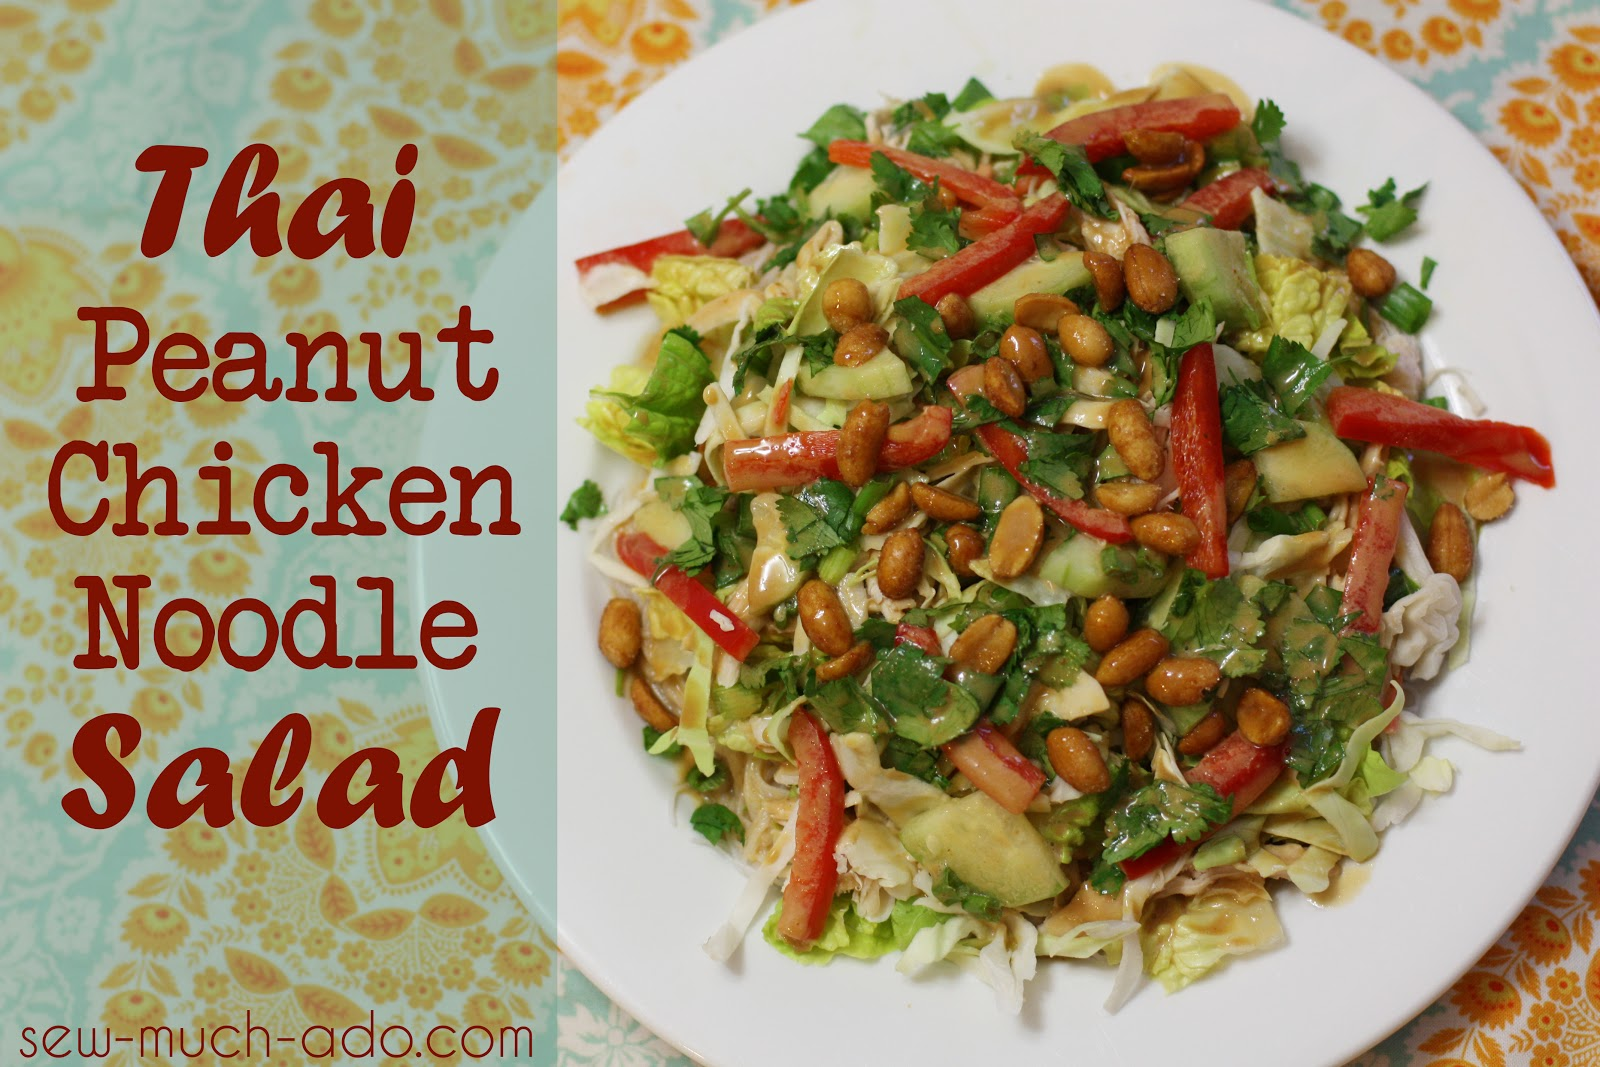 thai peanut chicken chicken noodle salad recipe